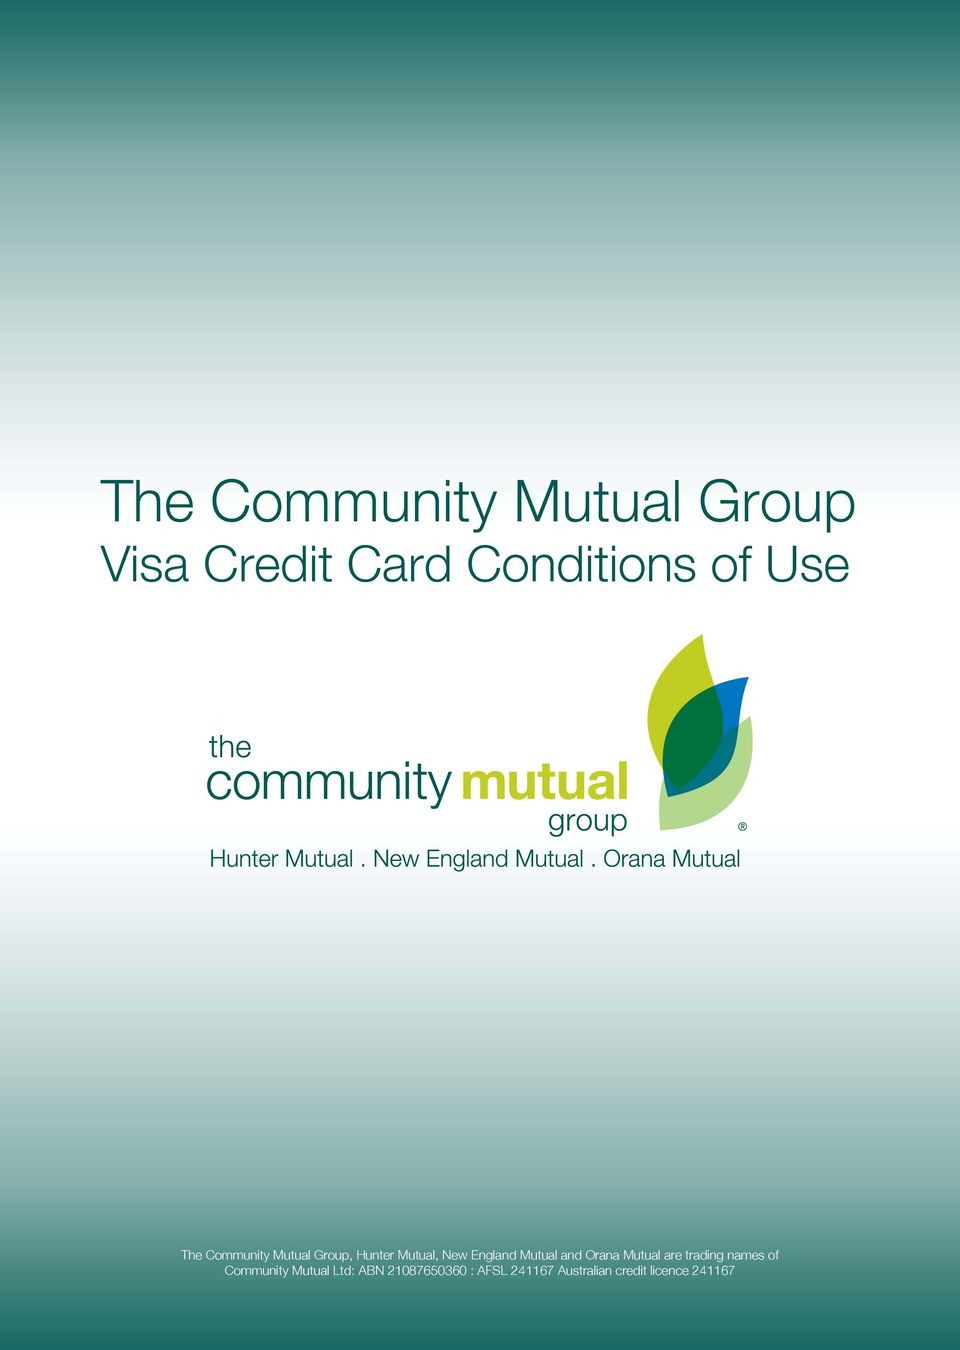 and Orana Mutual are trading names of Community Mutual Ltd: ABN